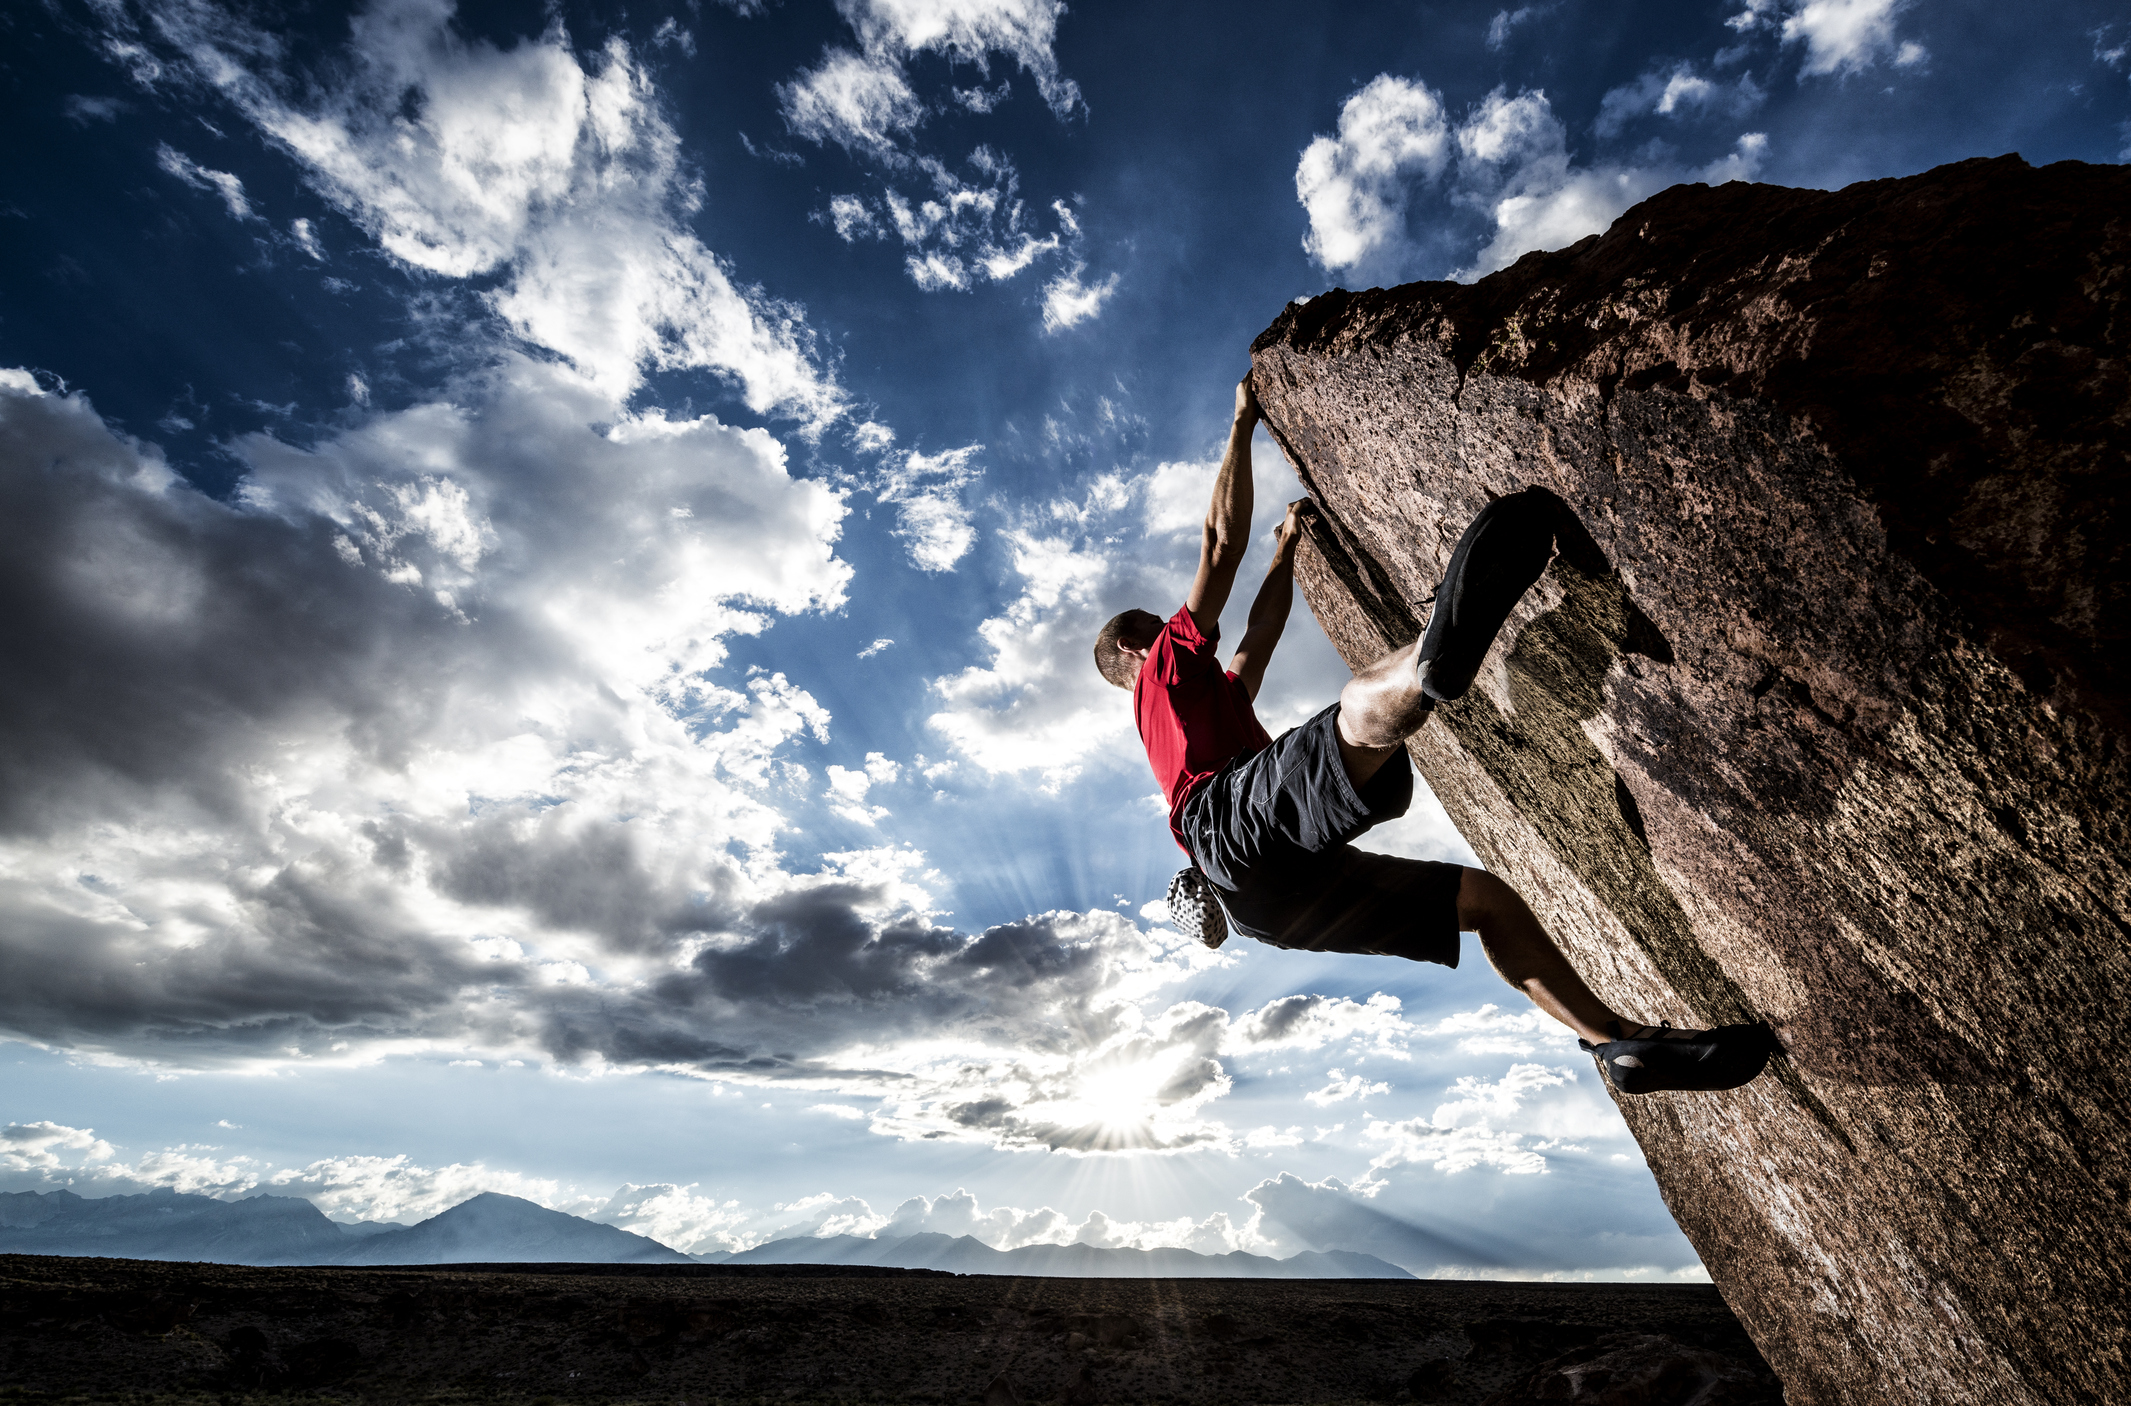 Rock climber bouldering on the side of a cliff in a dramatic setting